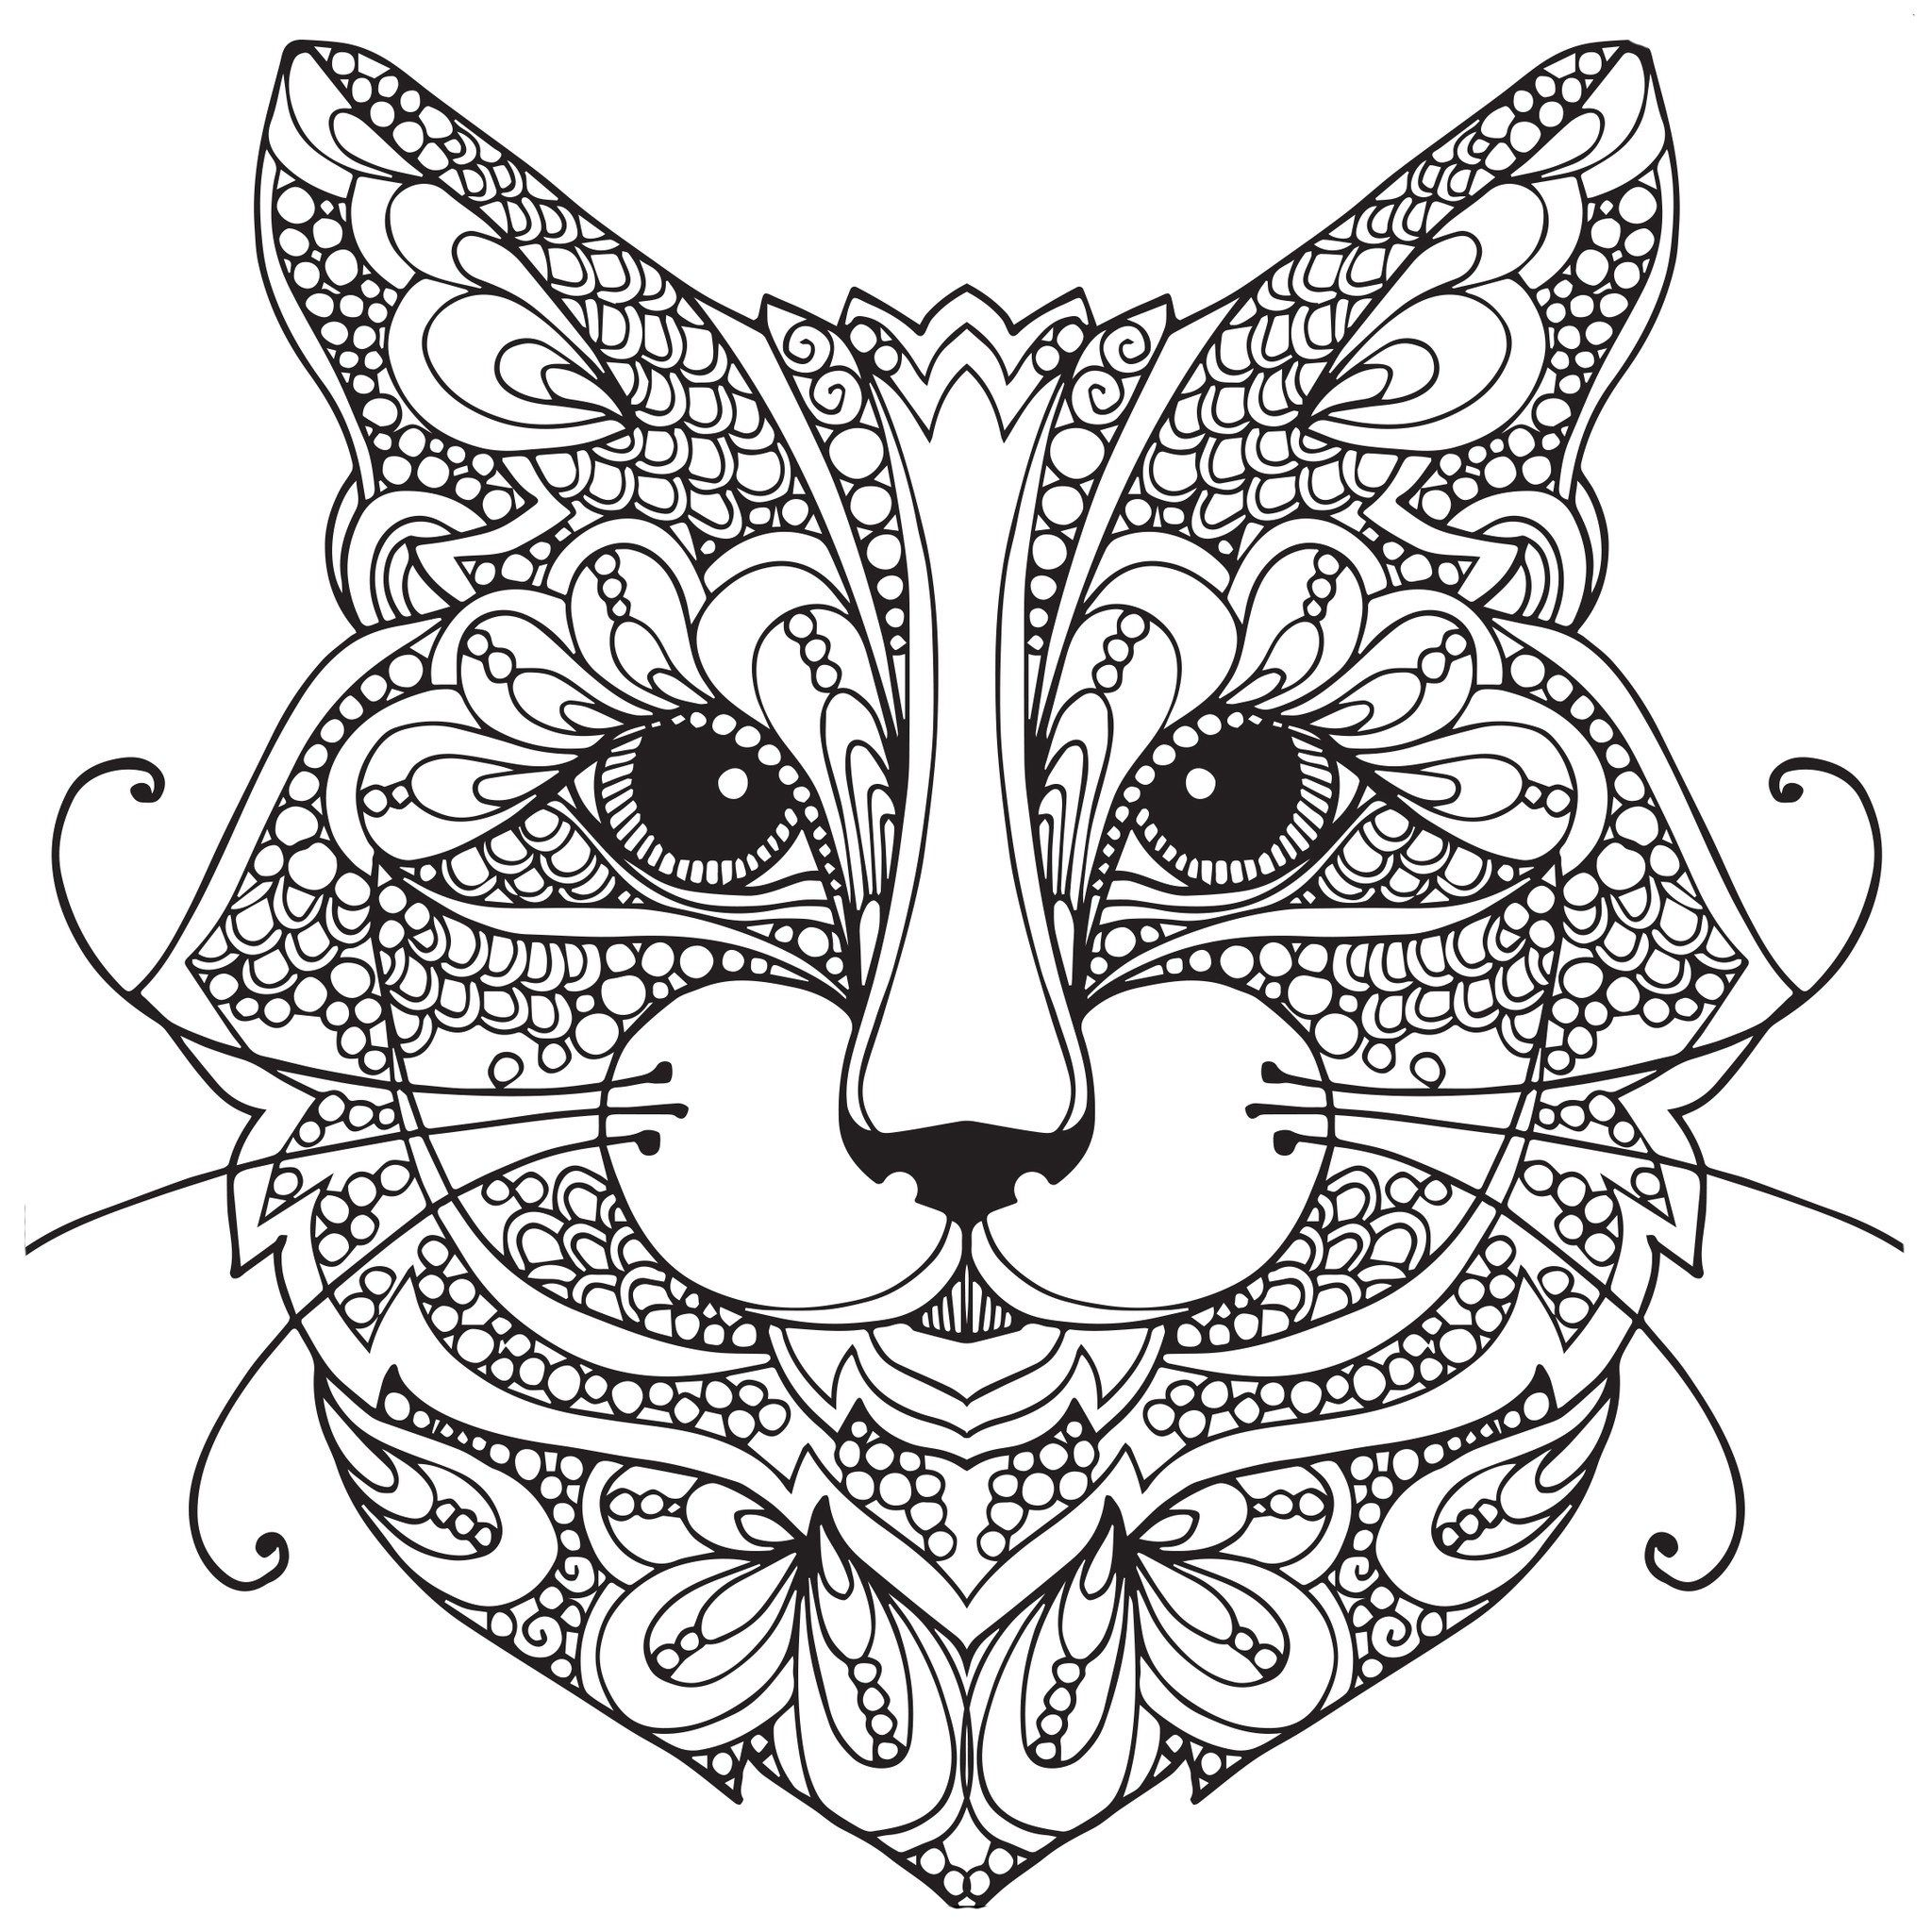 Adult Coloring Pages Cat1 coloring pages Pinterest